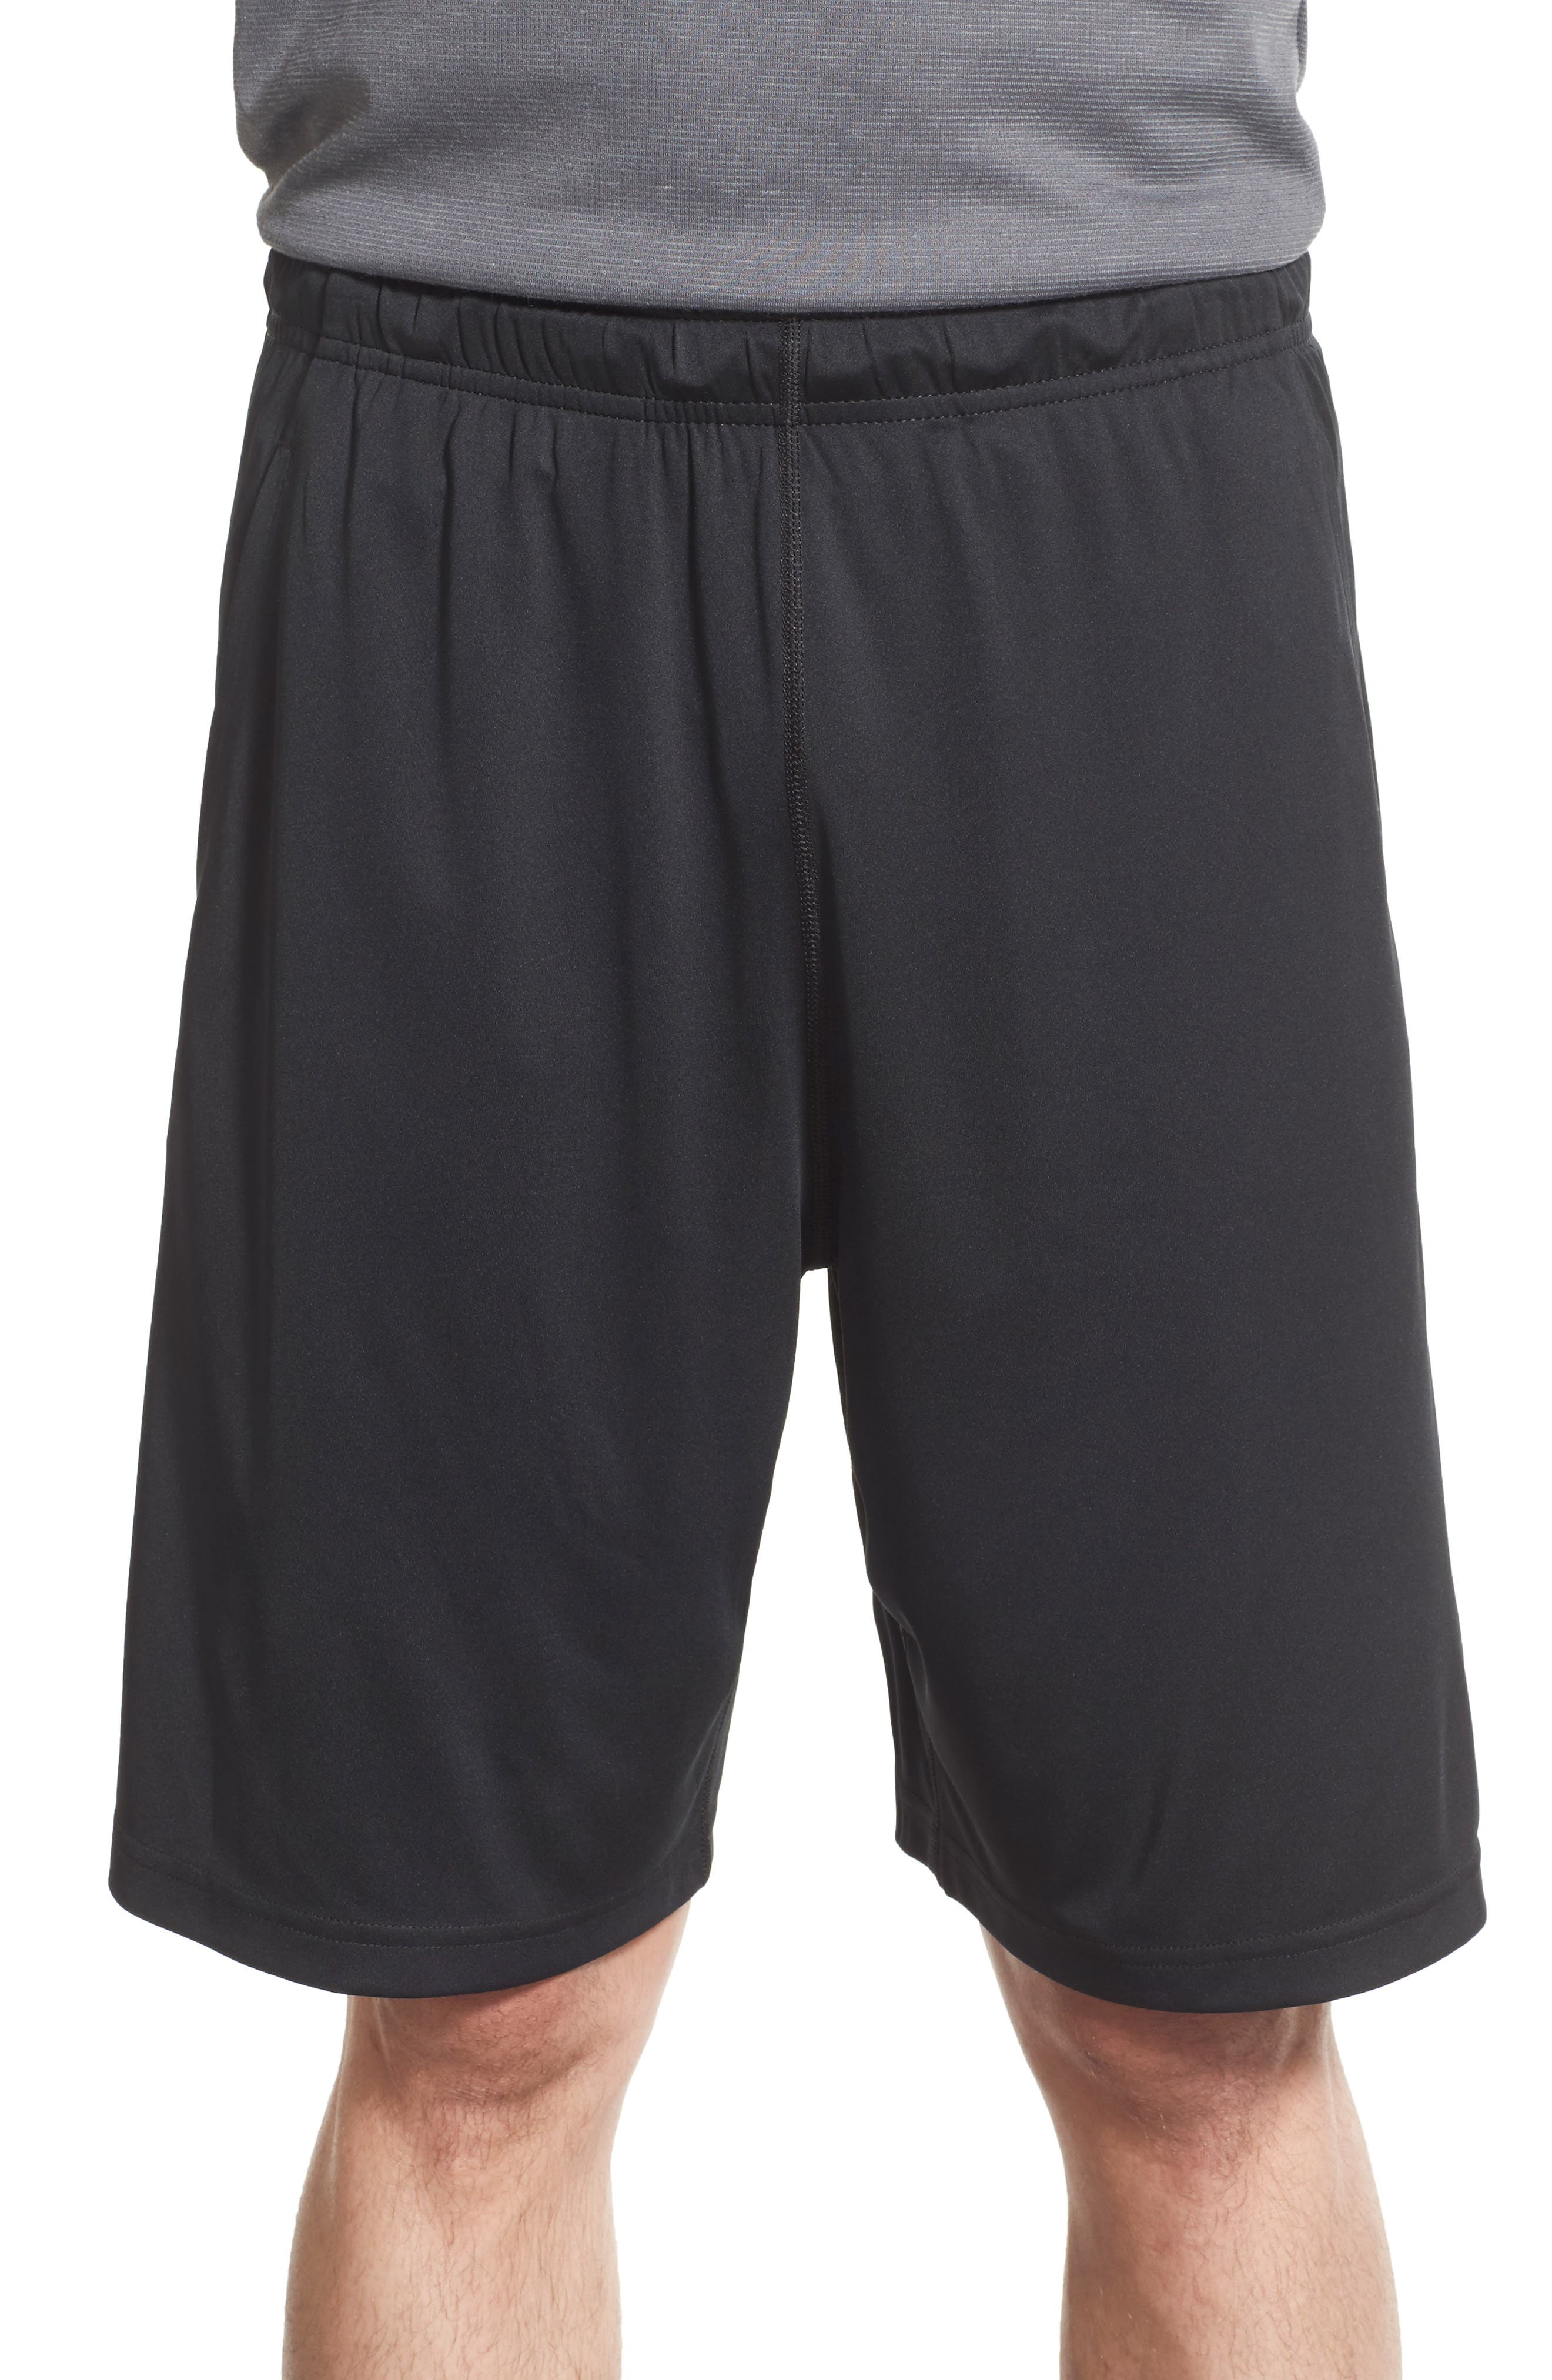 Fly Athletic Shorts,                             Alternate thumbnail 5, color,                             010